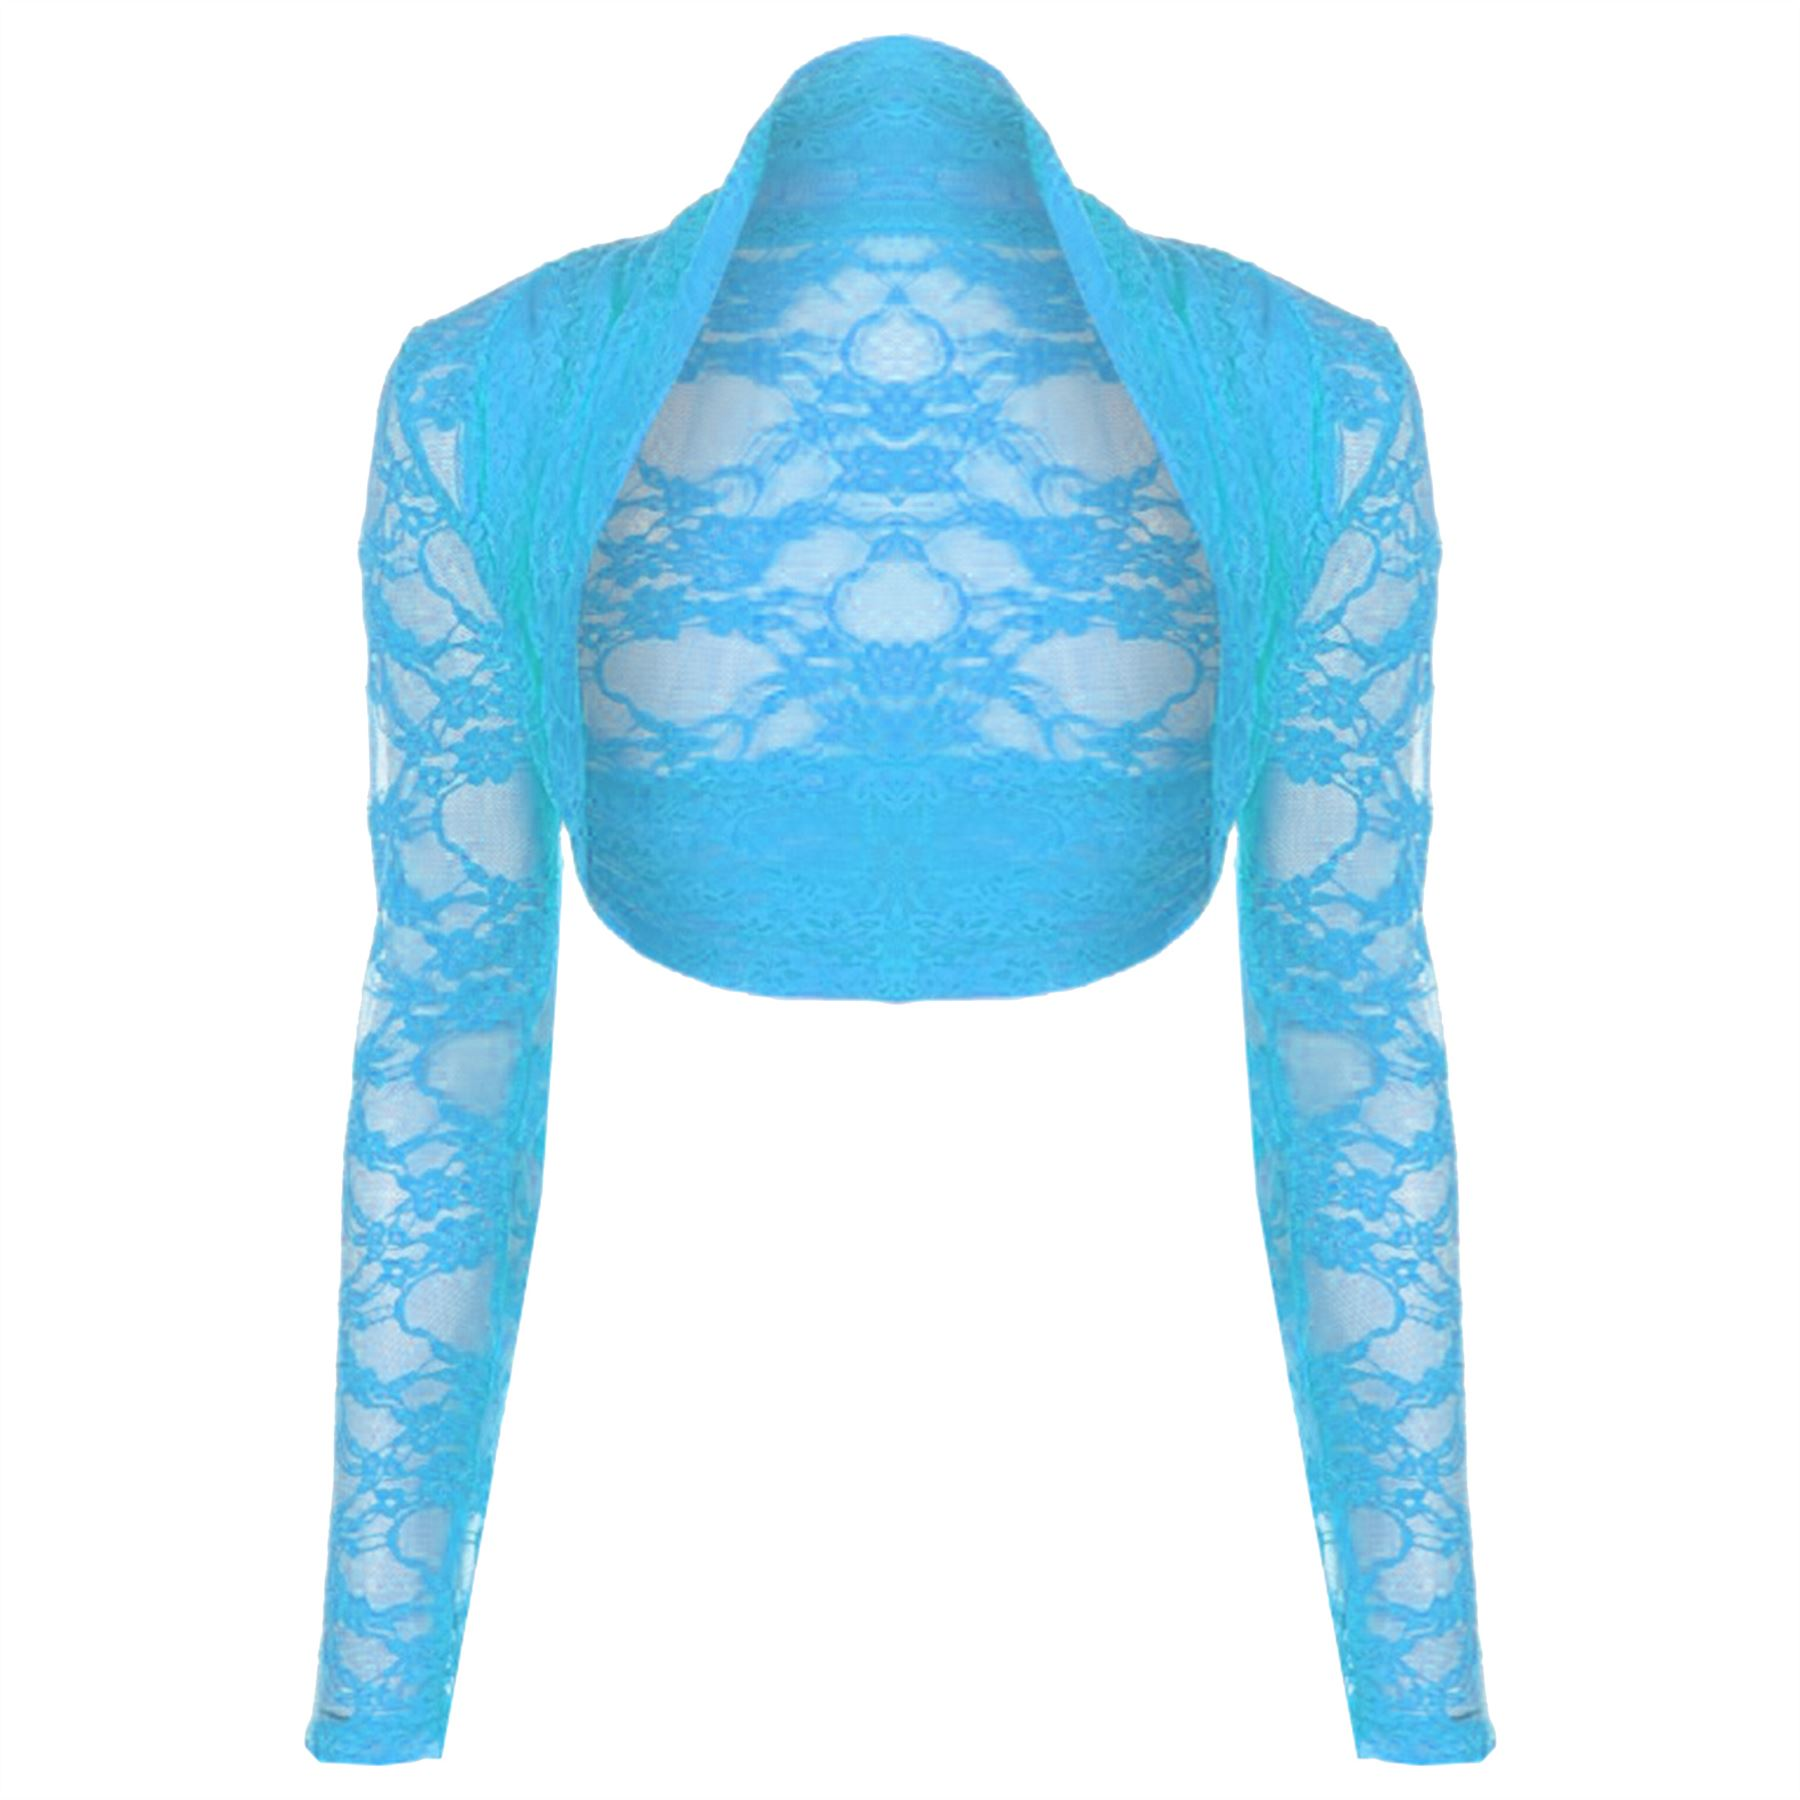 Womens-Ladies-Open-Bolero-Long-Sleeves-Floral-Lace-Cardigan-Shrug-Top-Plus-Sizes